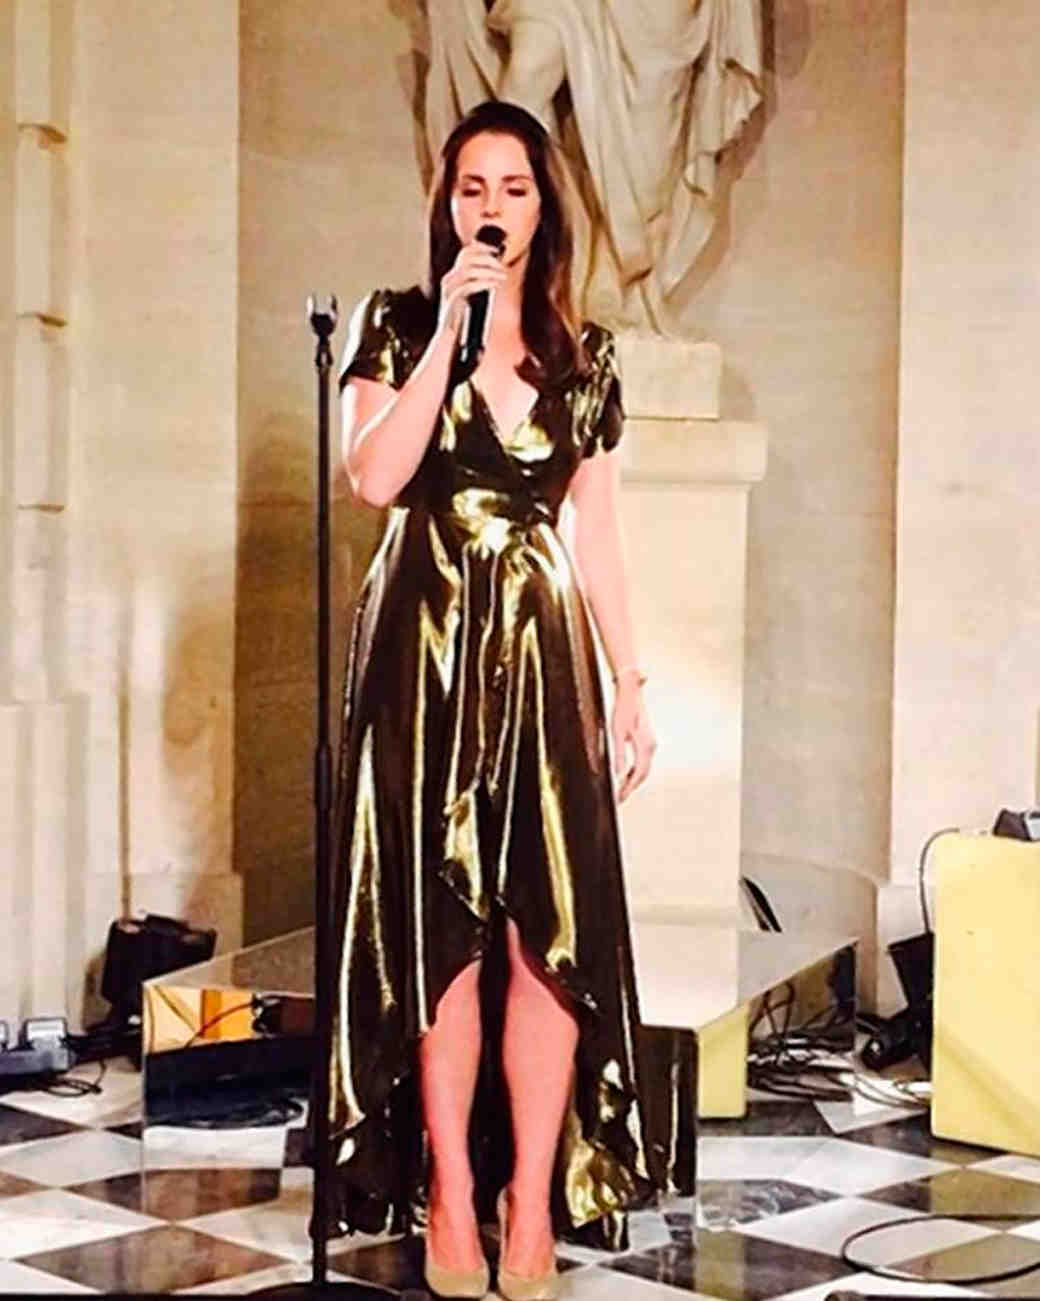 celebrity-wedding-singers-lana-del-rey-1215.jpg